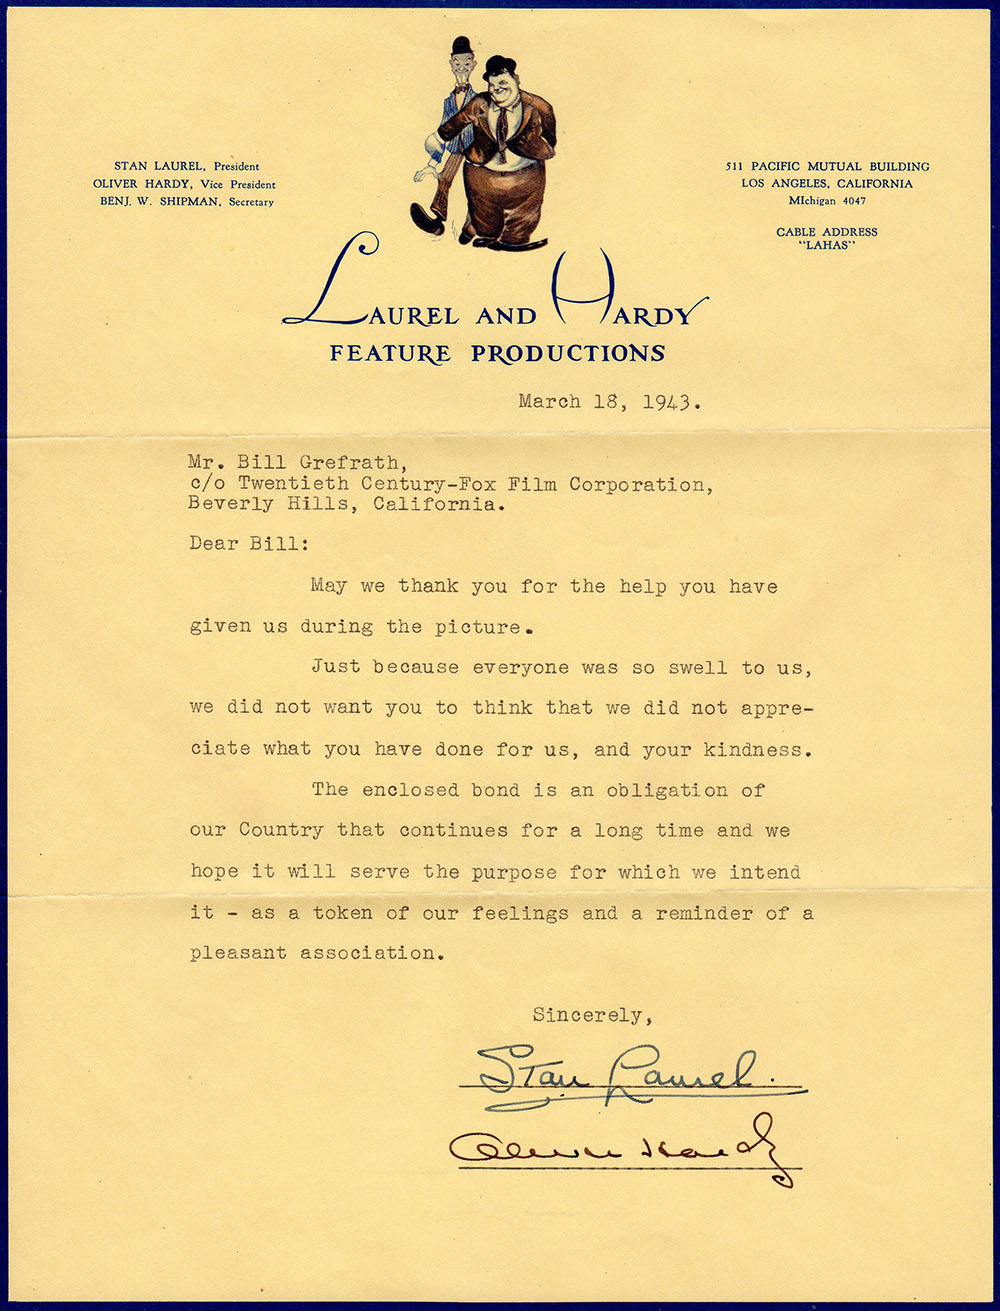 Rare Letter from both Stan Laurel & Oliver Hardy to Bill Grefrath